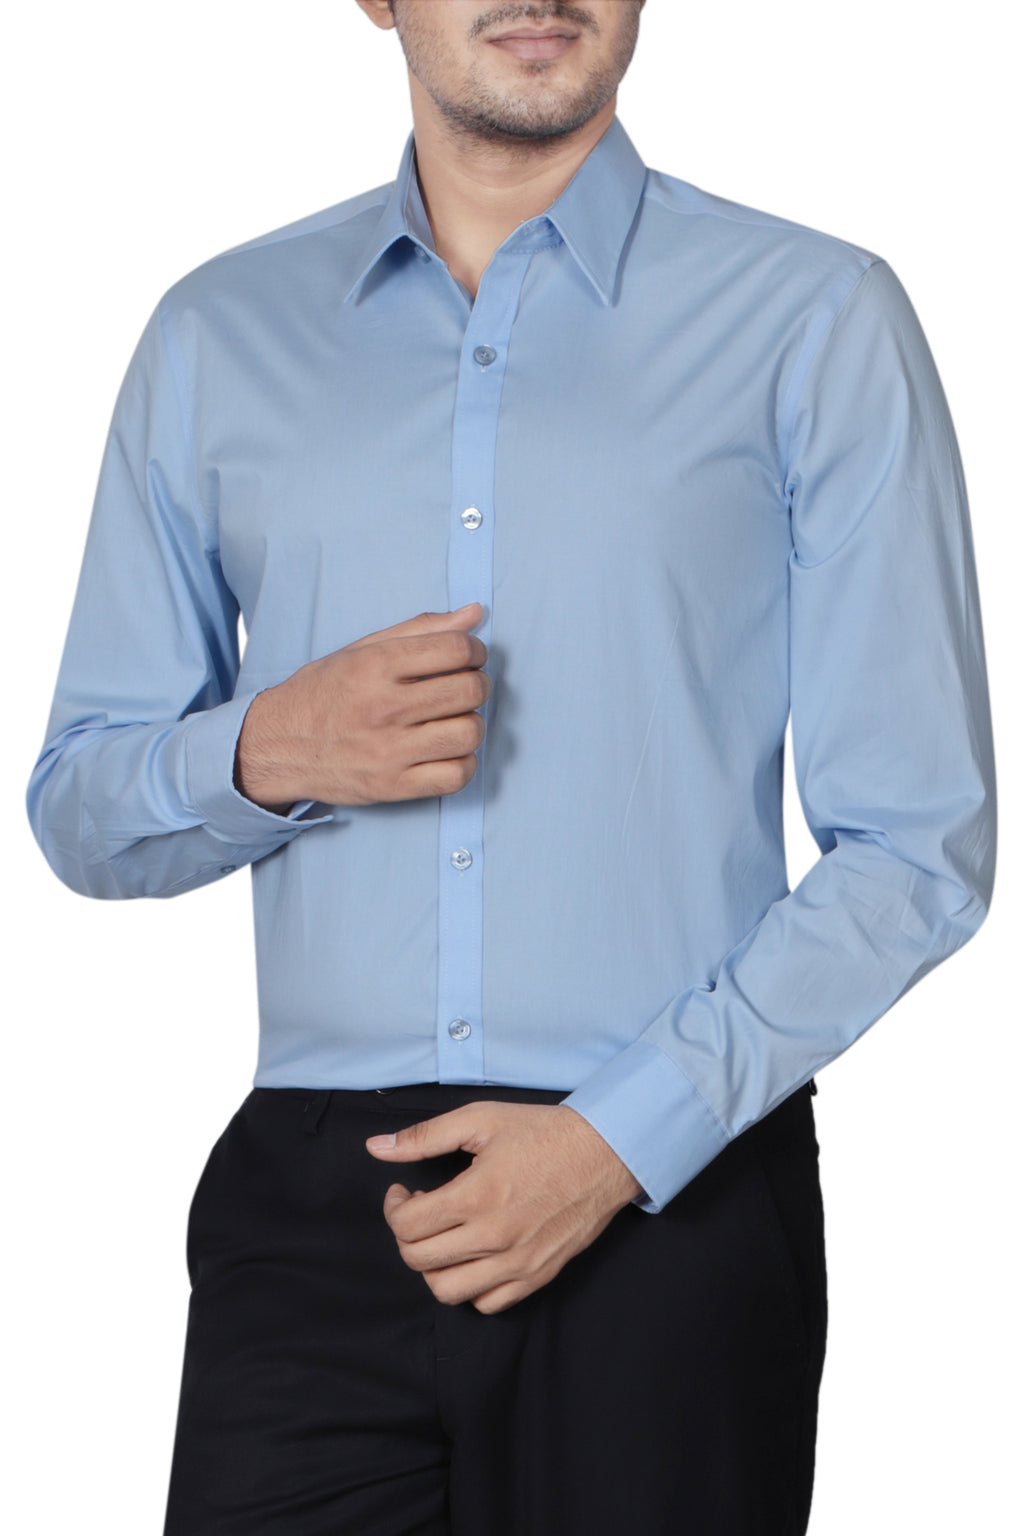 BLUE-2 - SLIM FIT